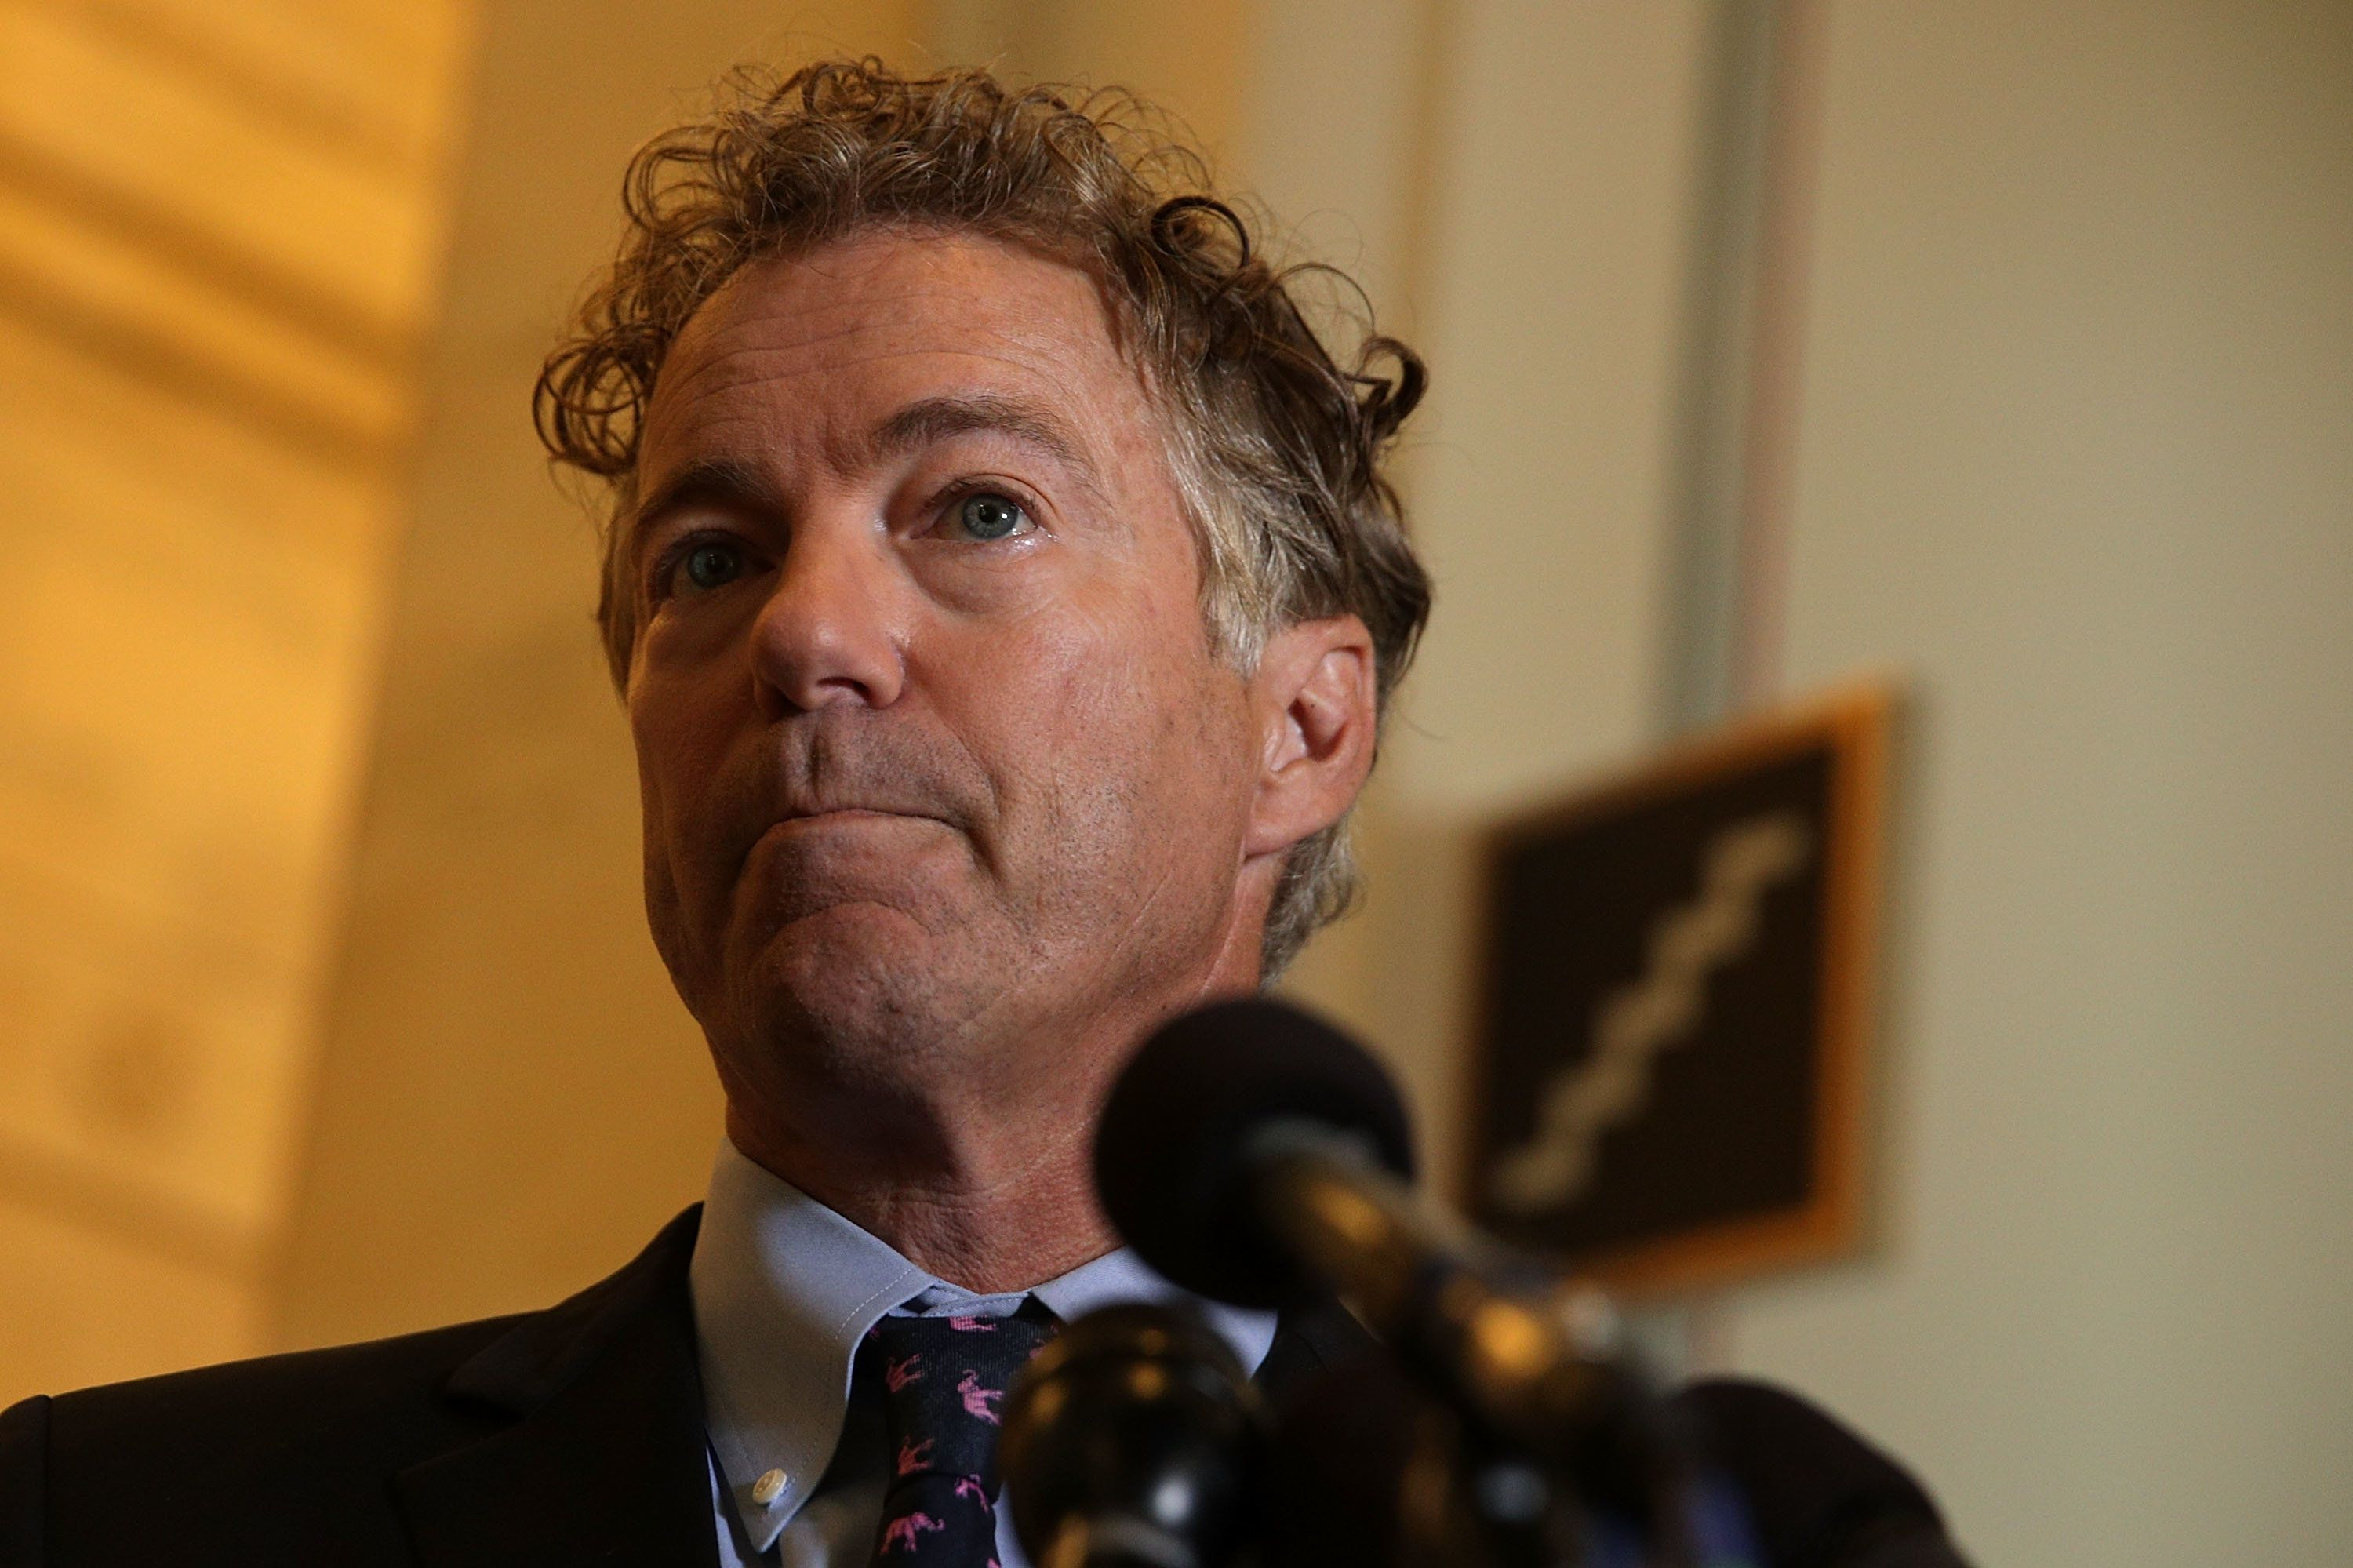 The Nov. 3 attack left Sen. Rand Paul (R-Ky.) with bruises and fractured ribs. He later developed pneumonia.